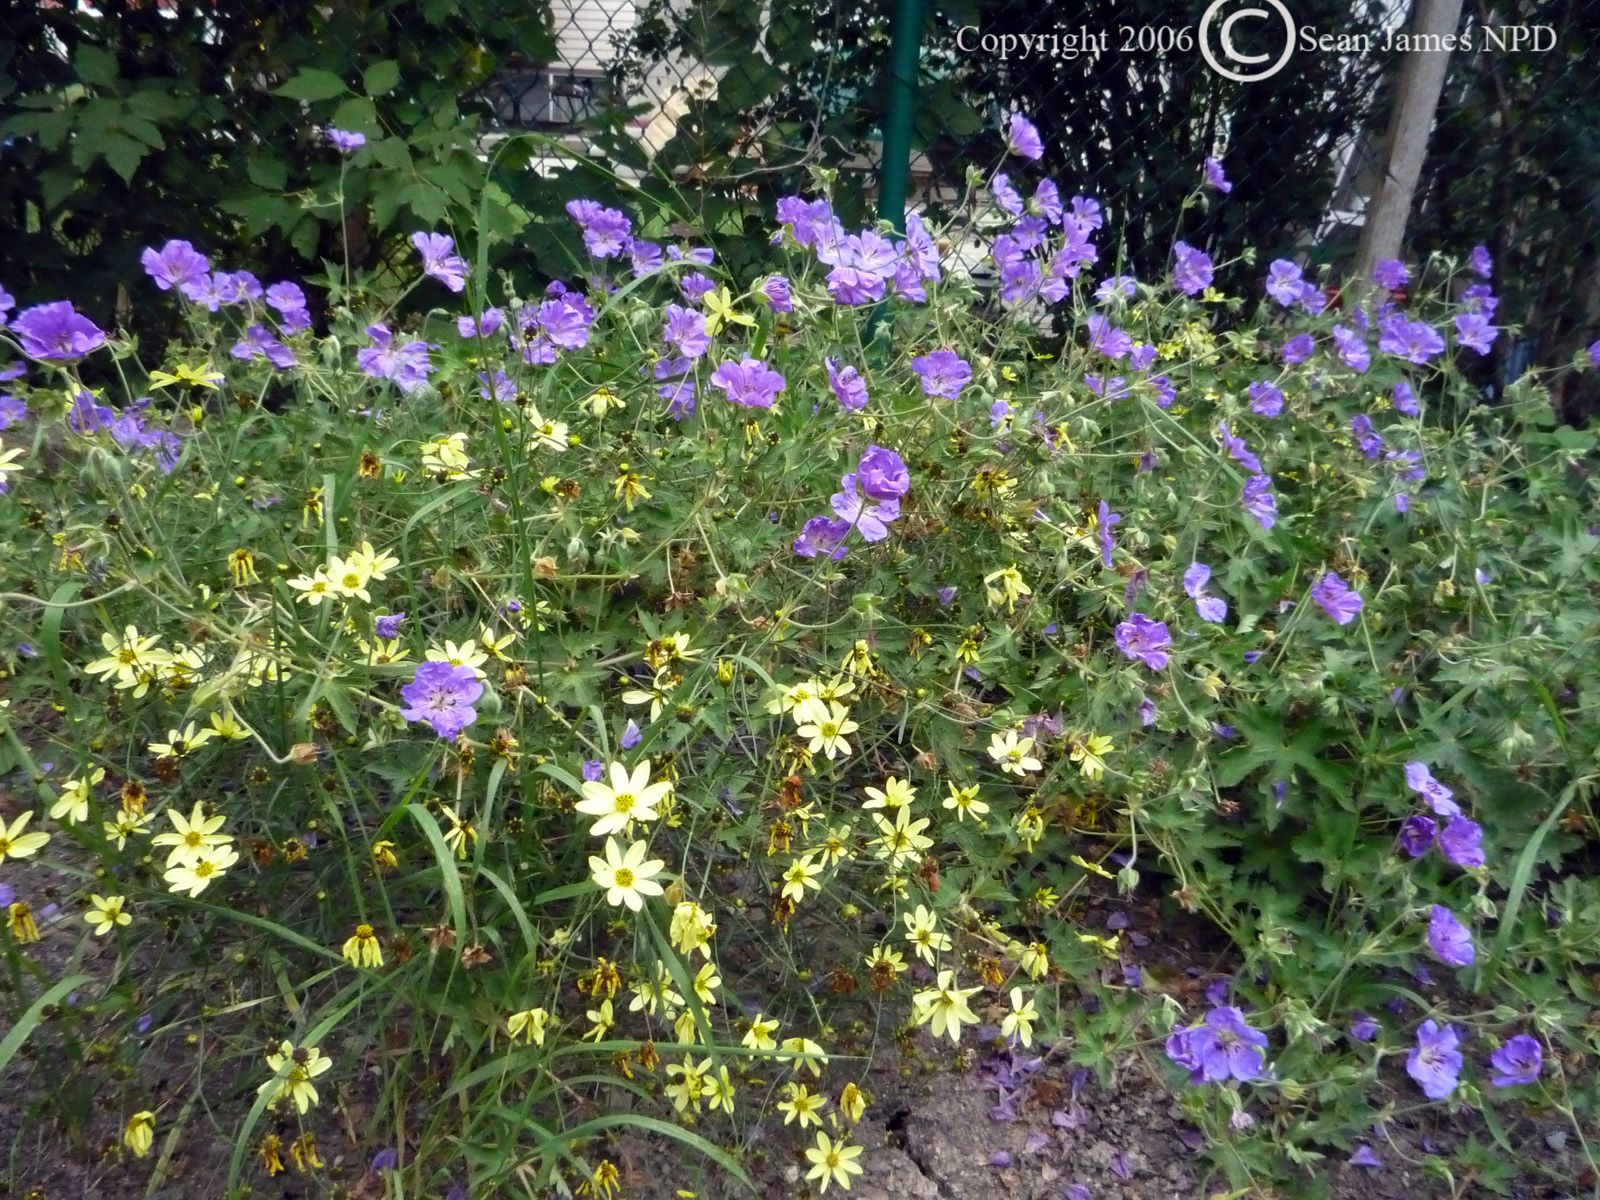 And here they are together! Moonbeam Coreopsis and Rozanne Geranium - a  stellar pair: